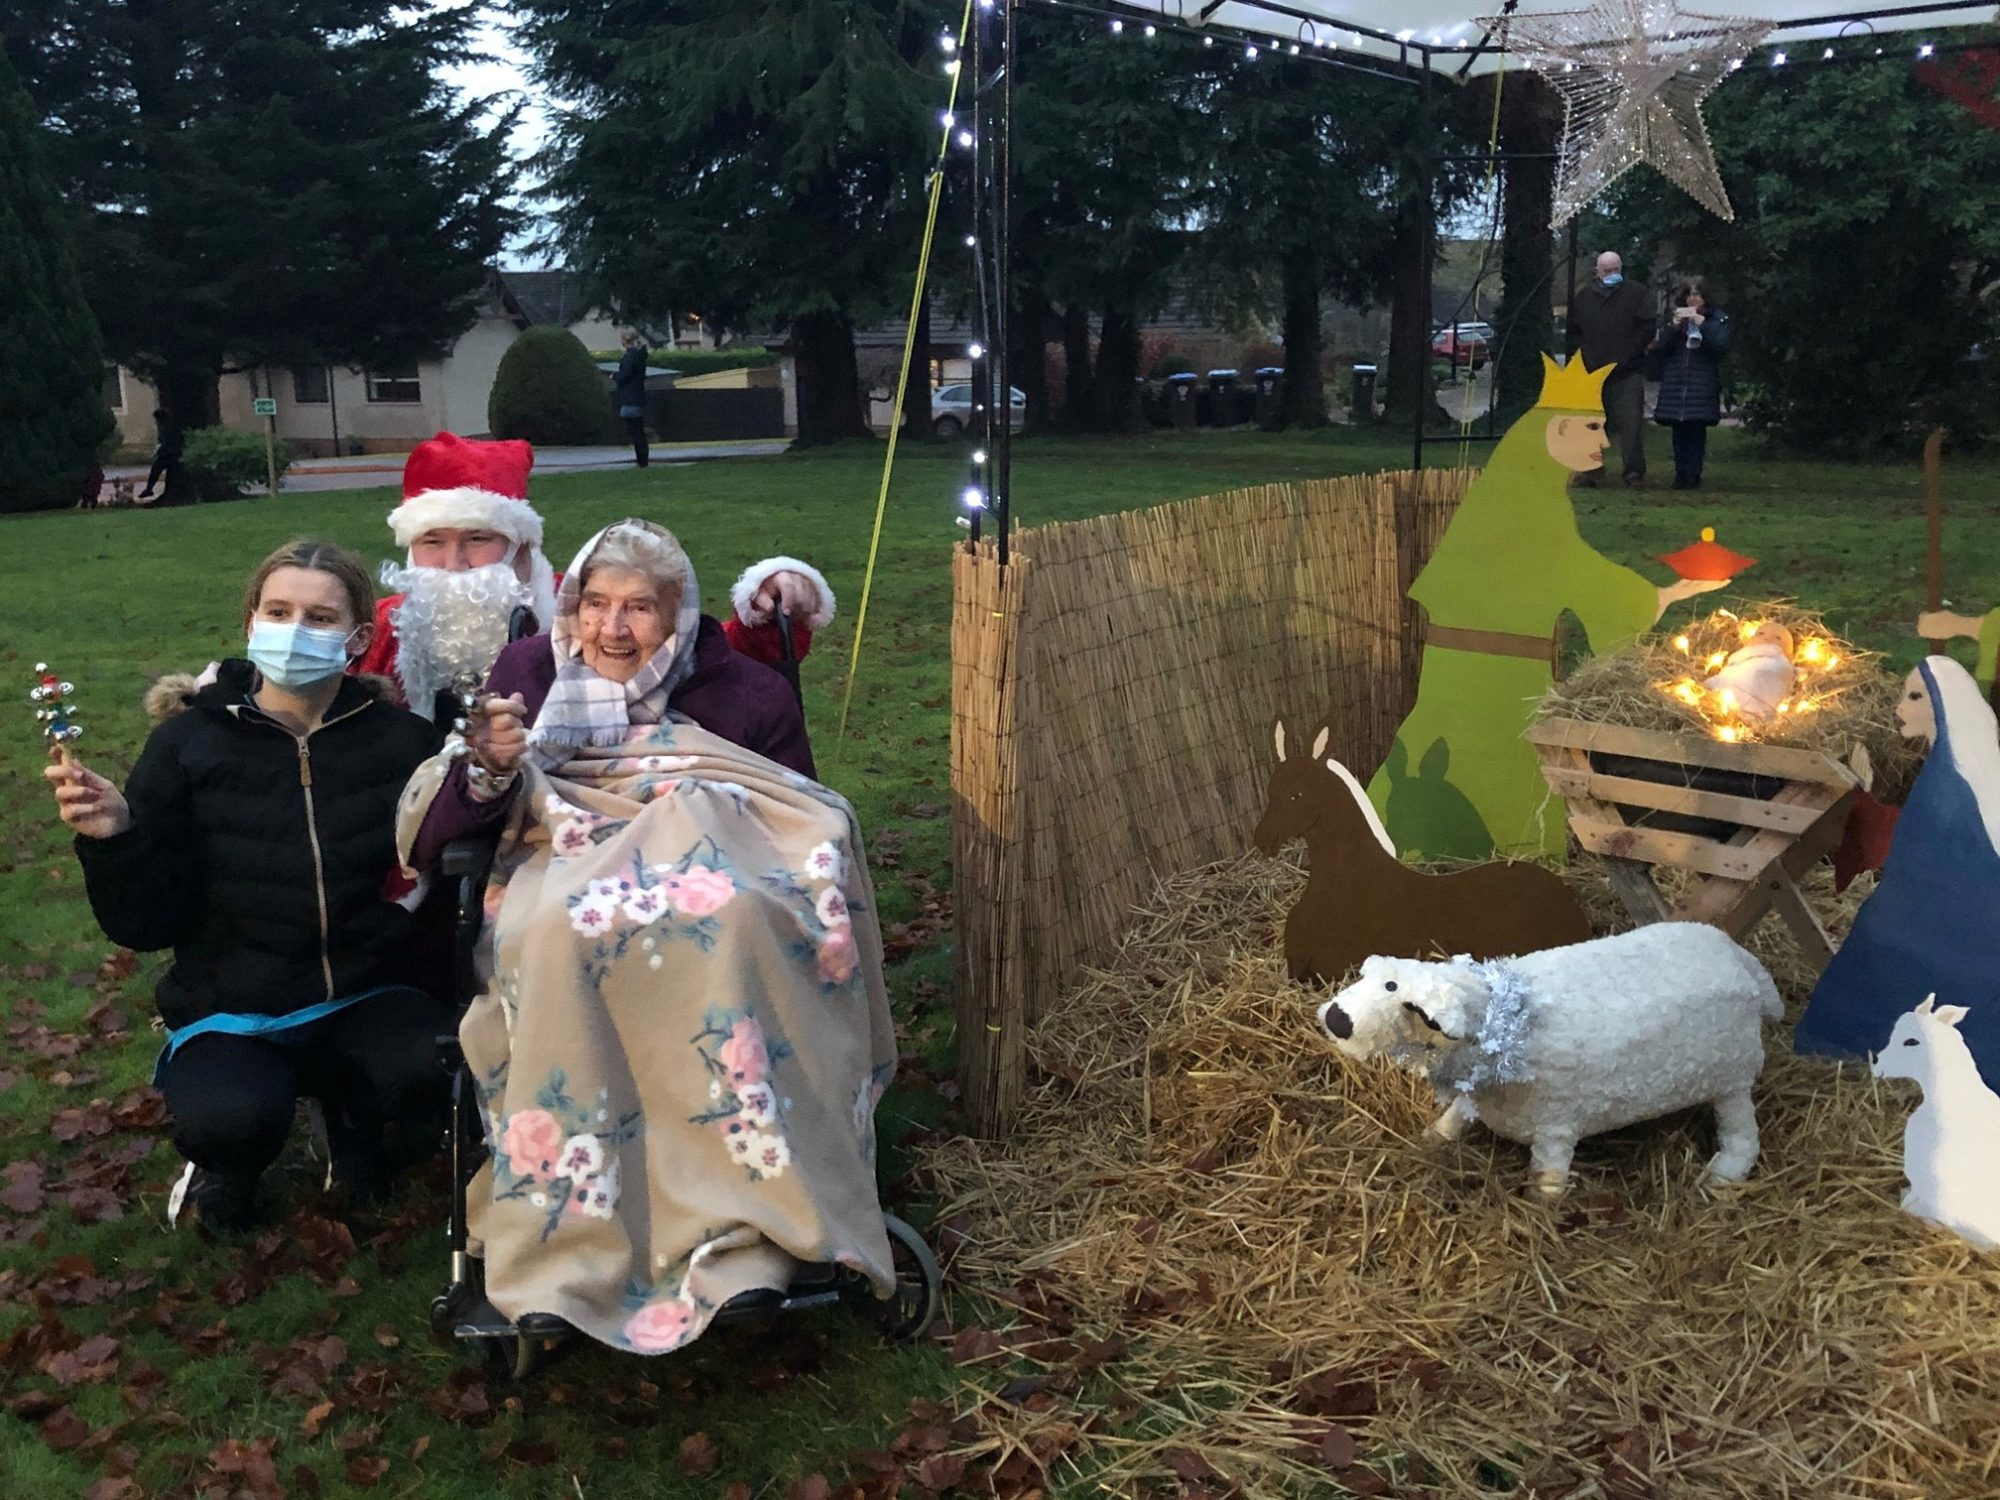 Balhousie Luncarty transforms its grounds into Winter Wonderland